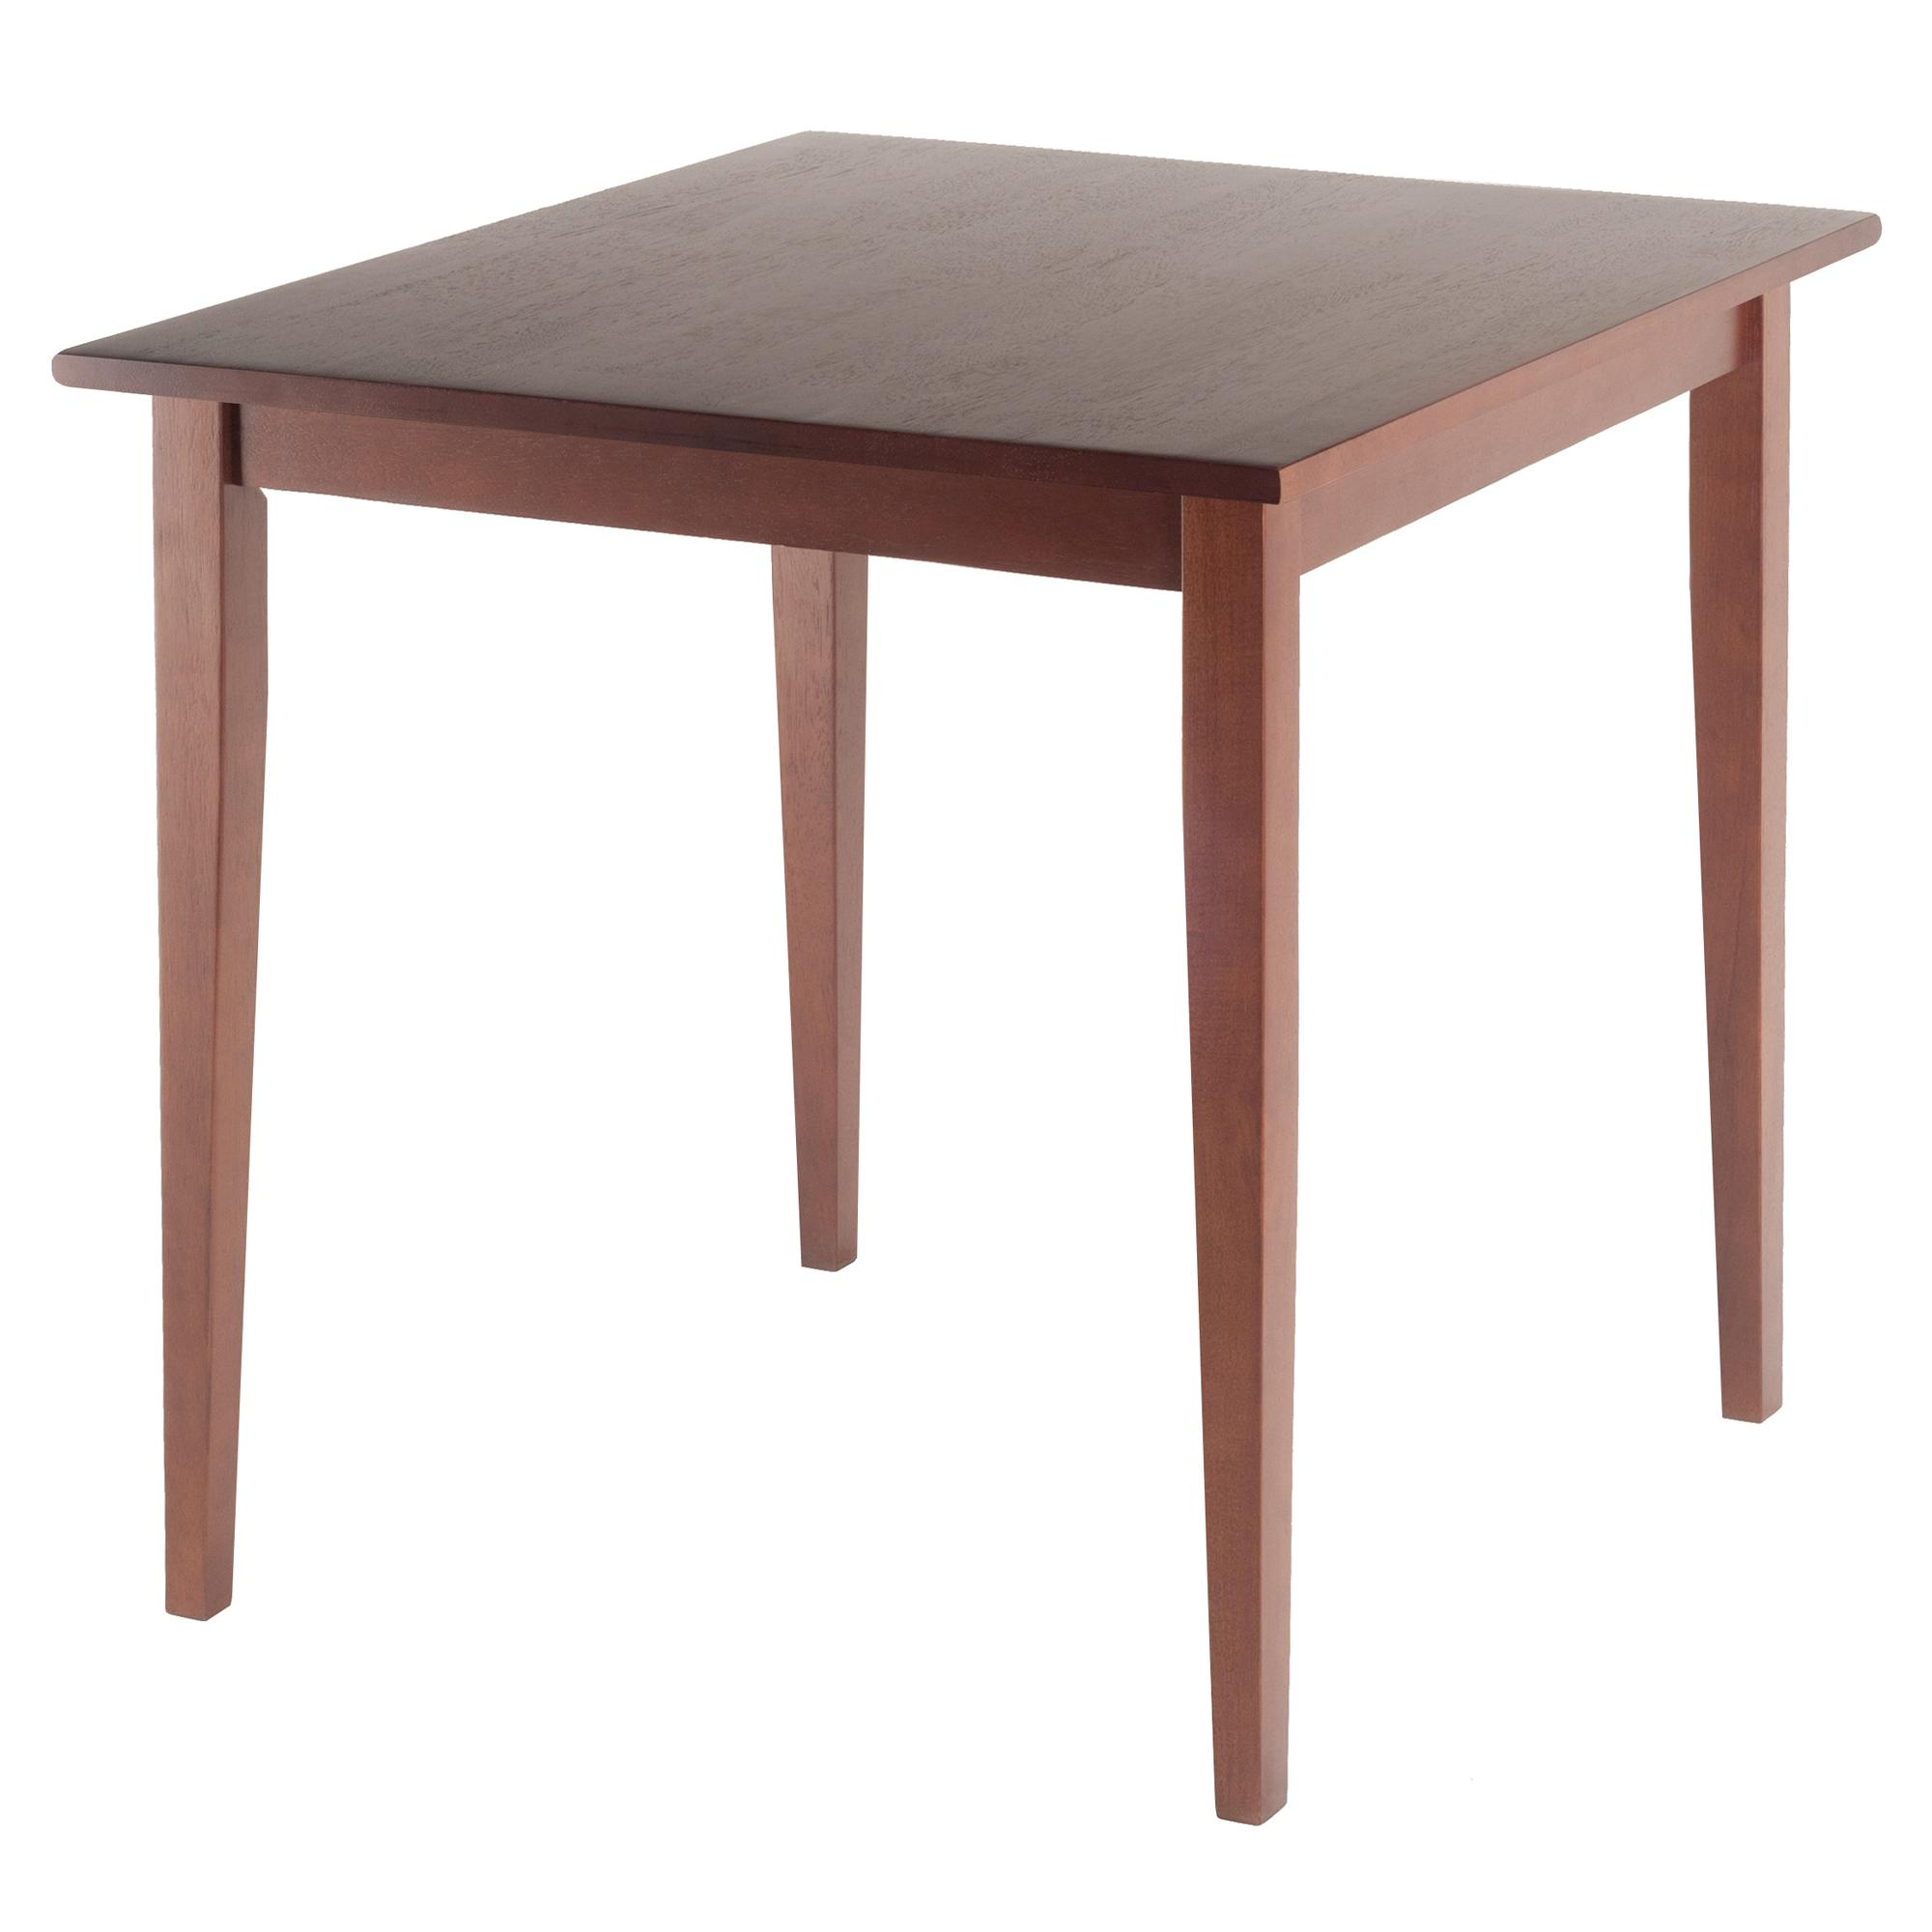 Amazoncom Winsome Wood Groveland Square Dining Table In